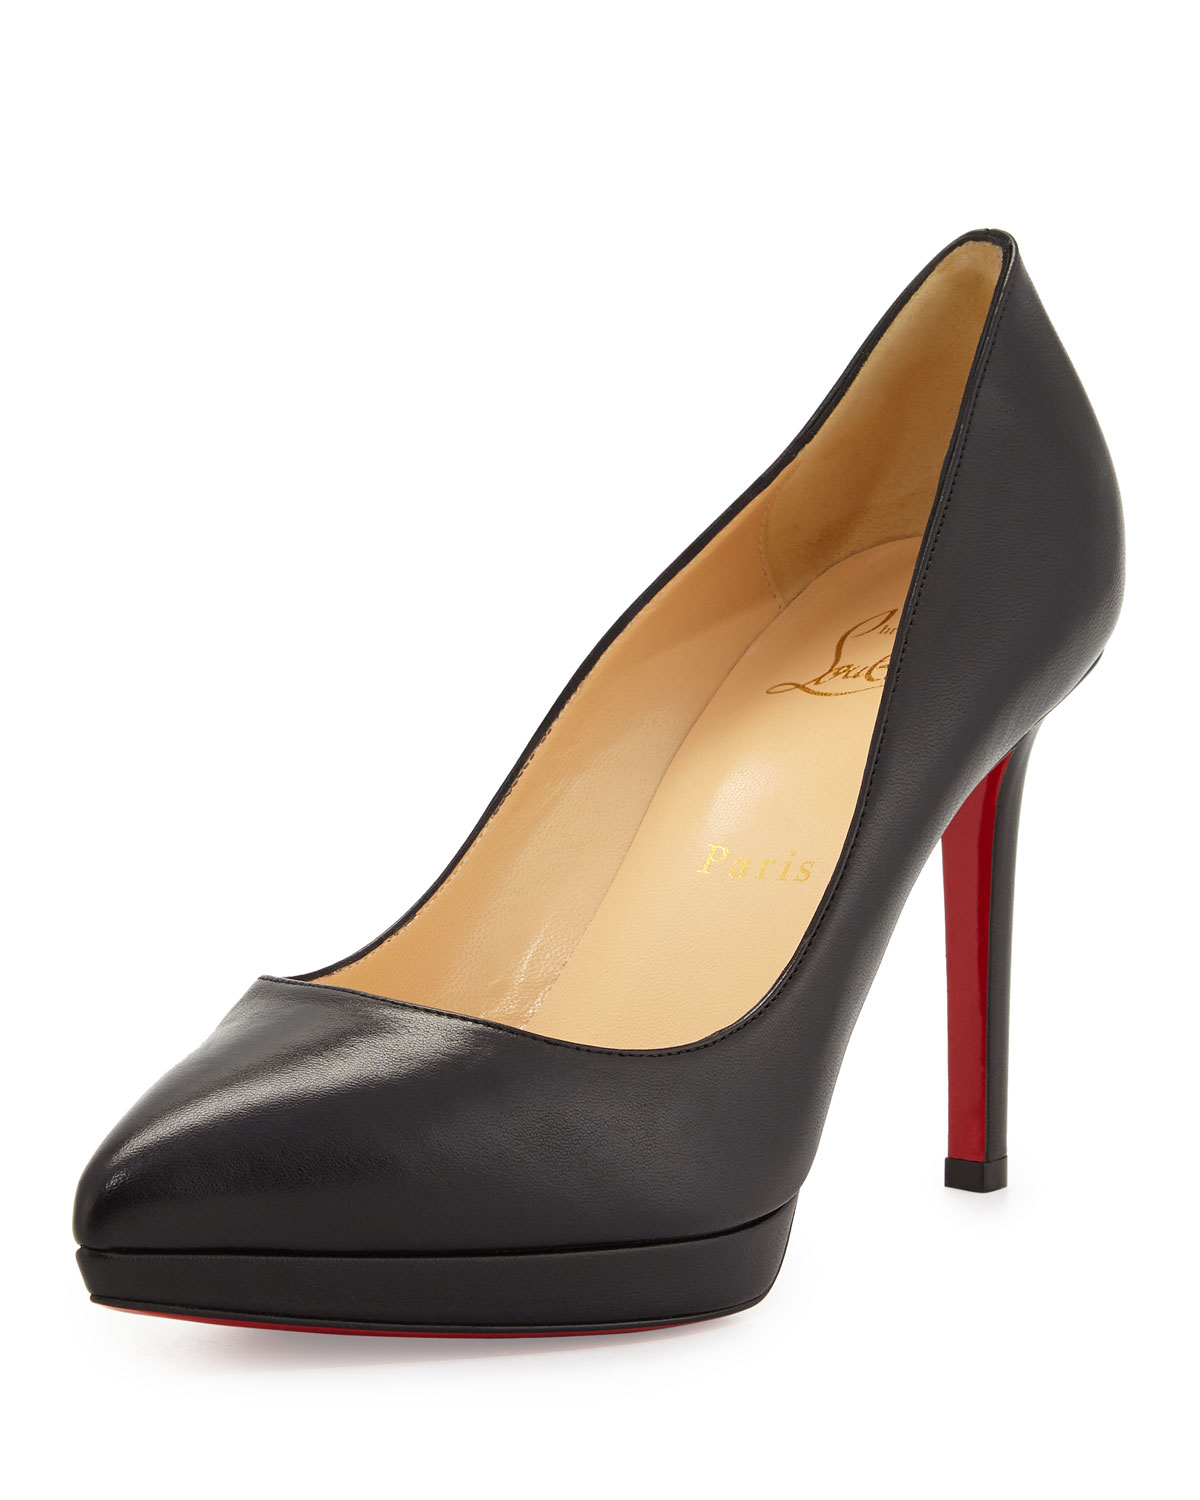 official photos 99842 8822f Pigalle Plato Leather Red Sole Pumps, Black